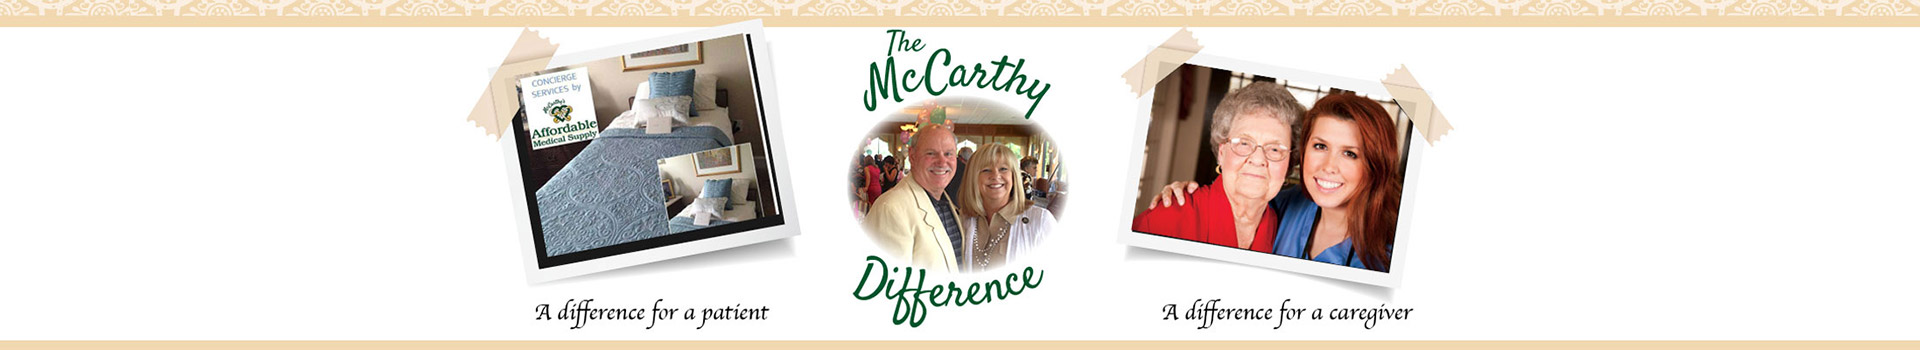 McCarthy-difference